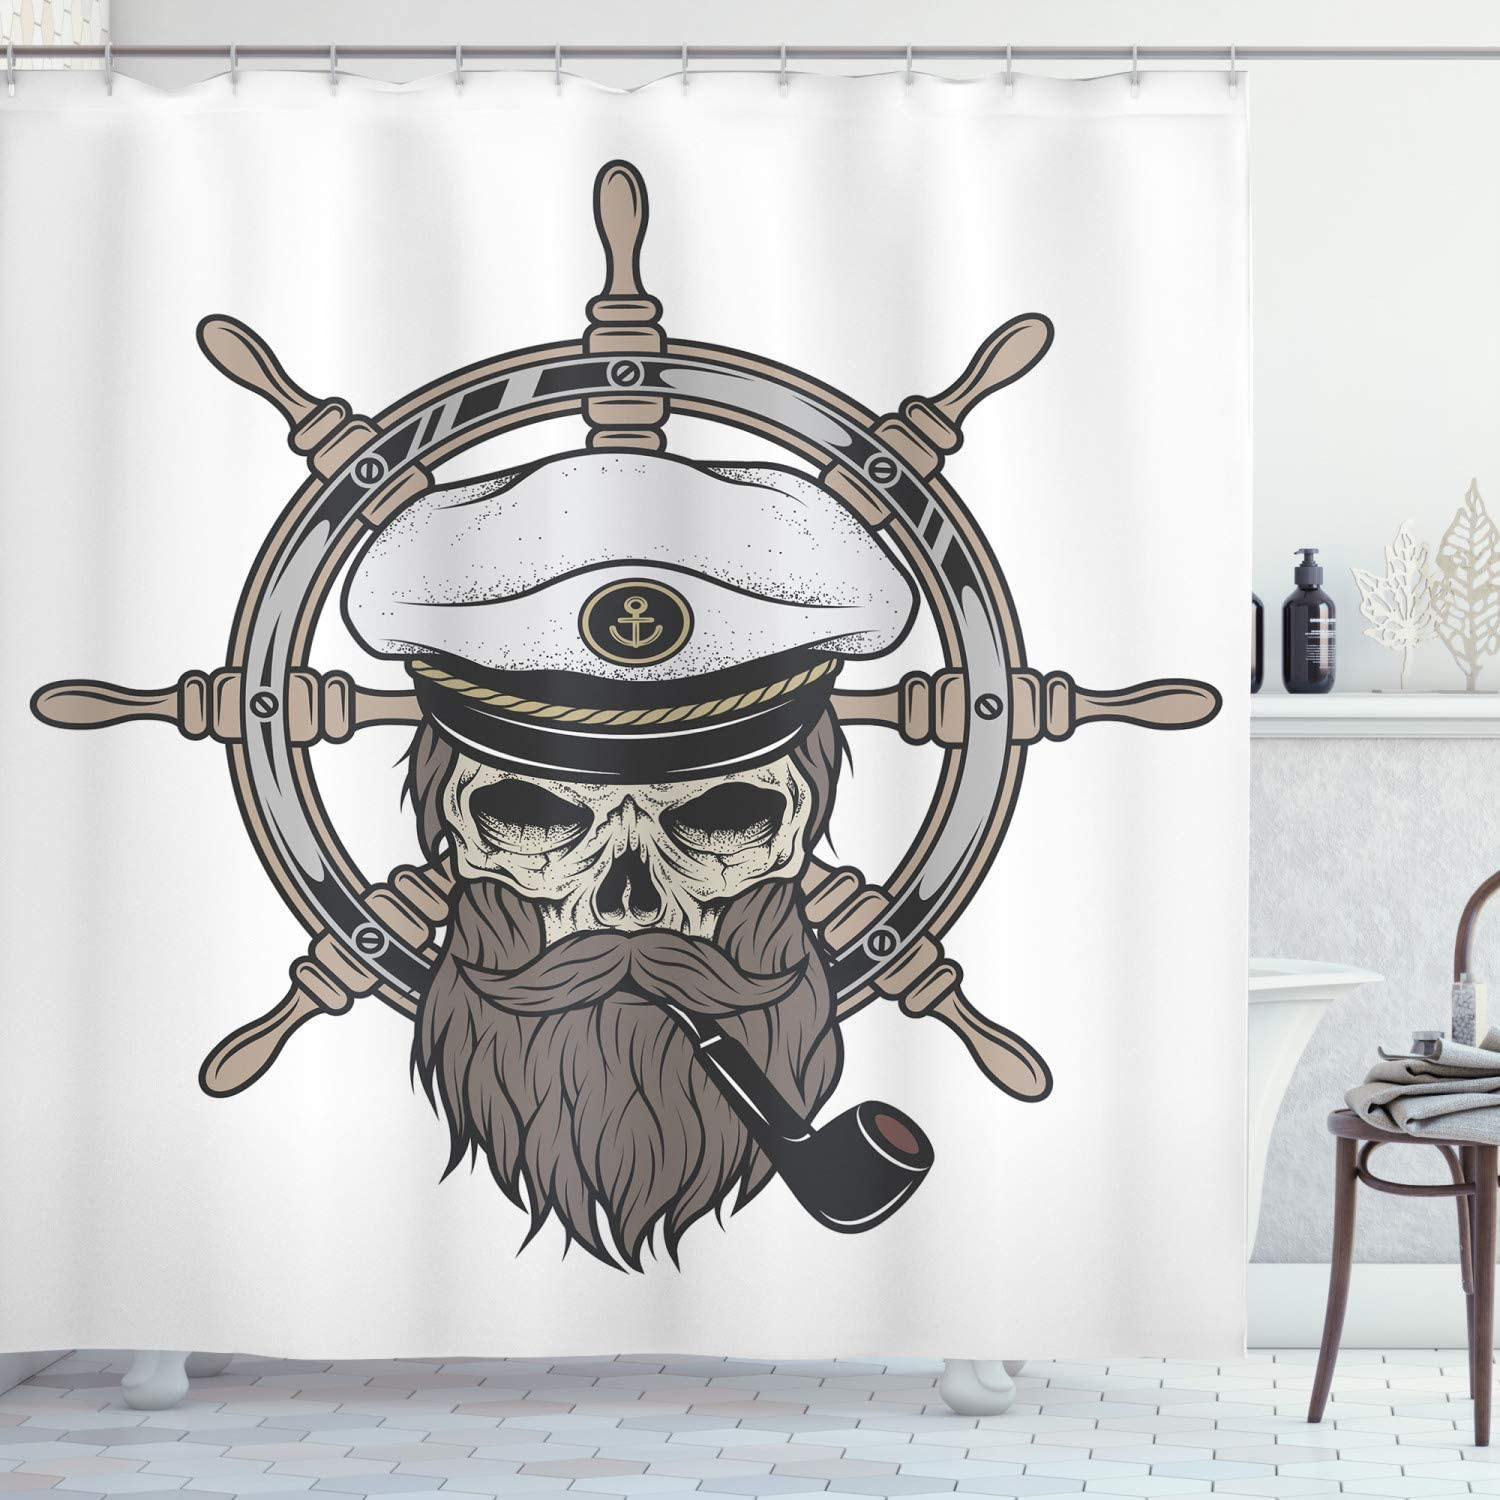 Details about  /Vintage Shower Curtain Nautical Pirate Skull Print for Bathroom